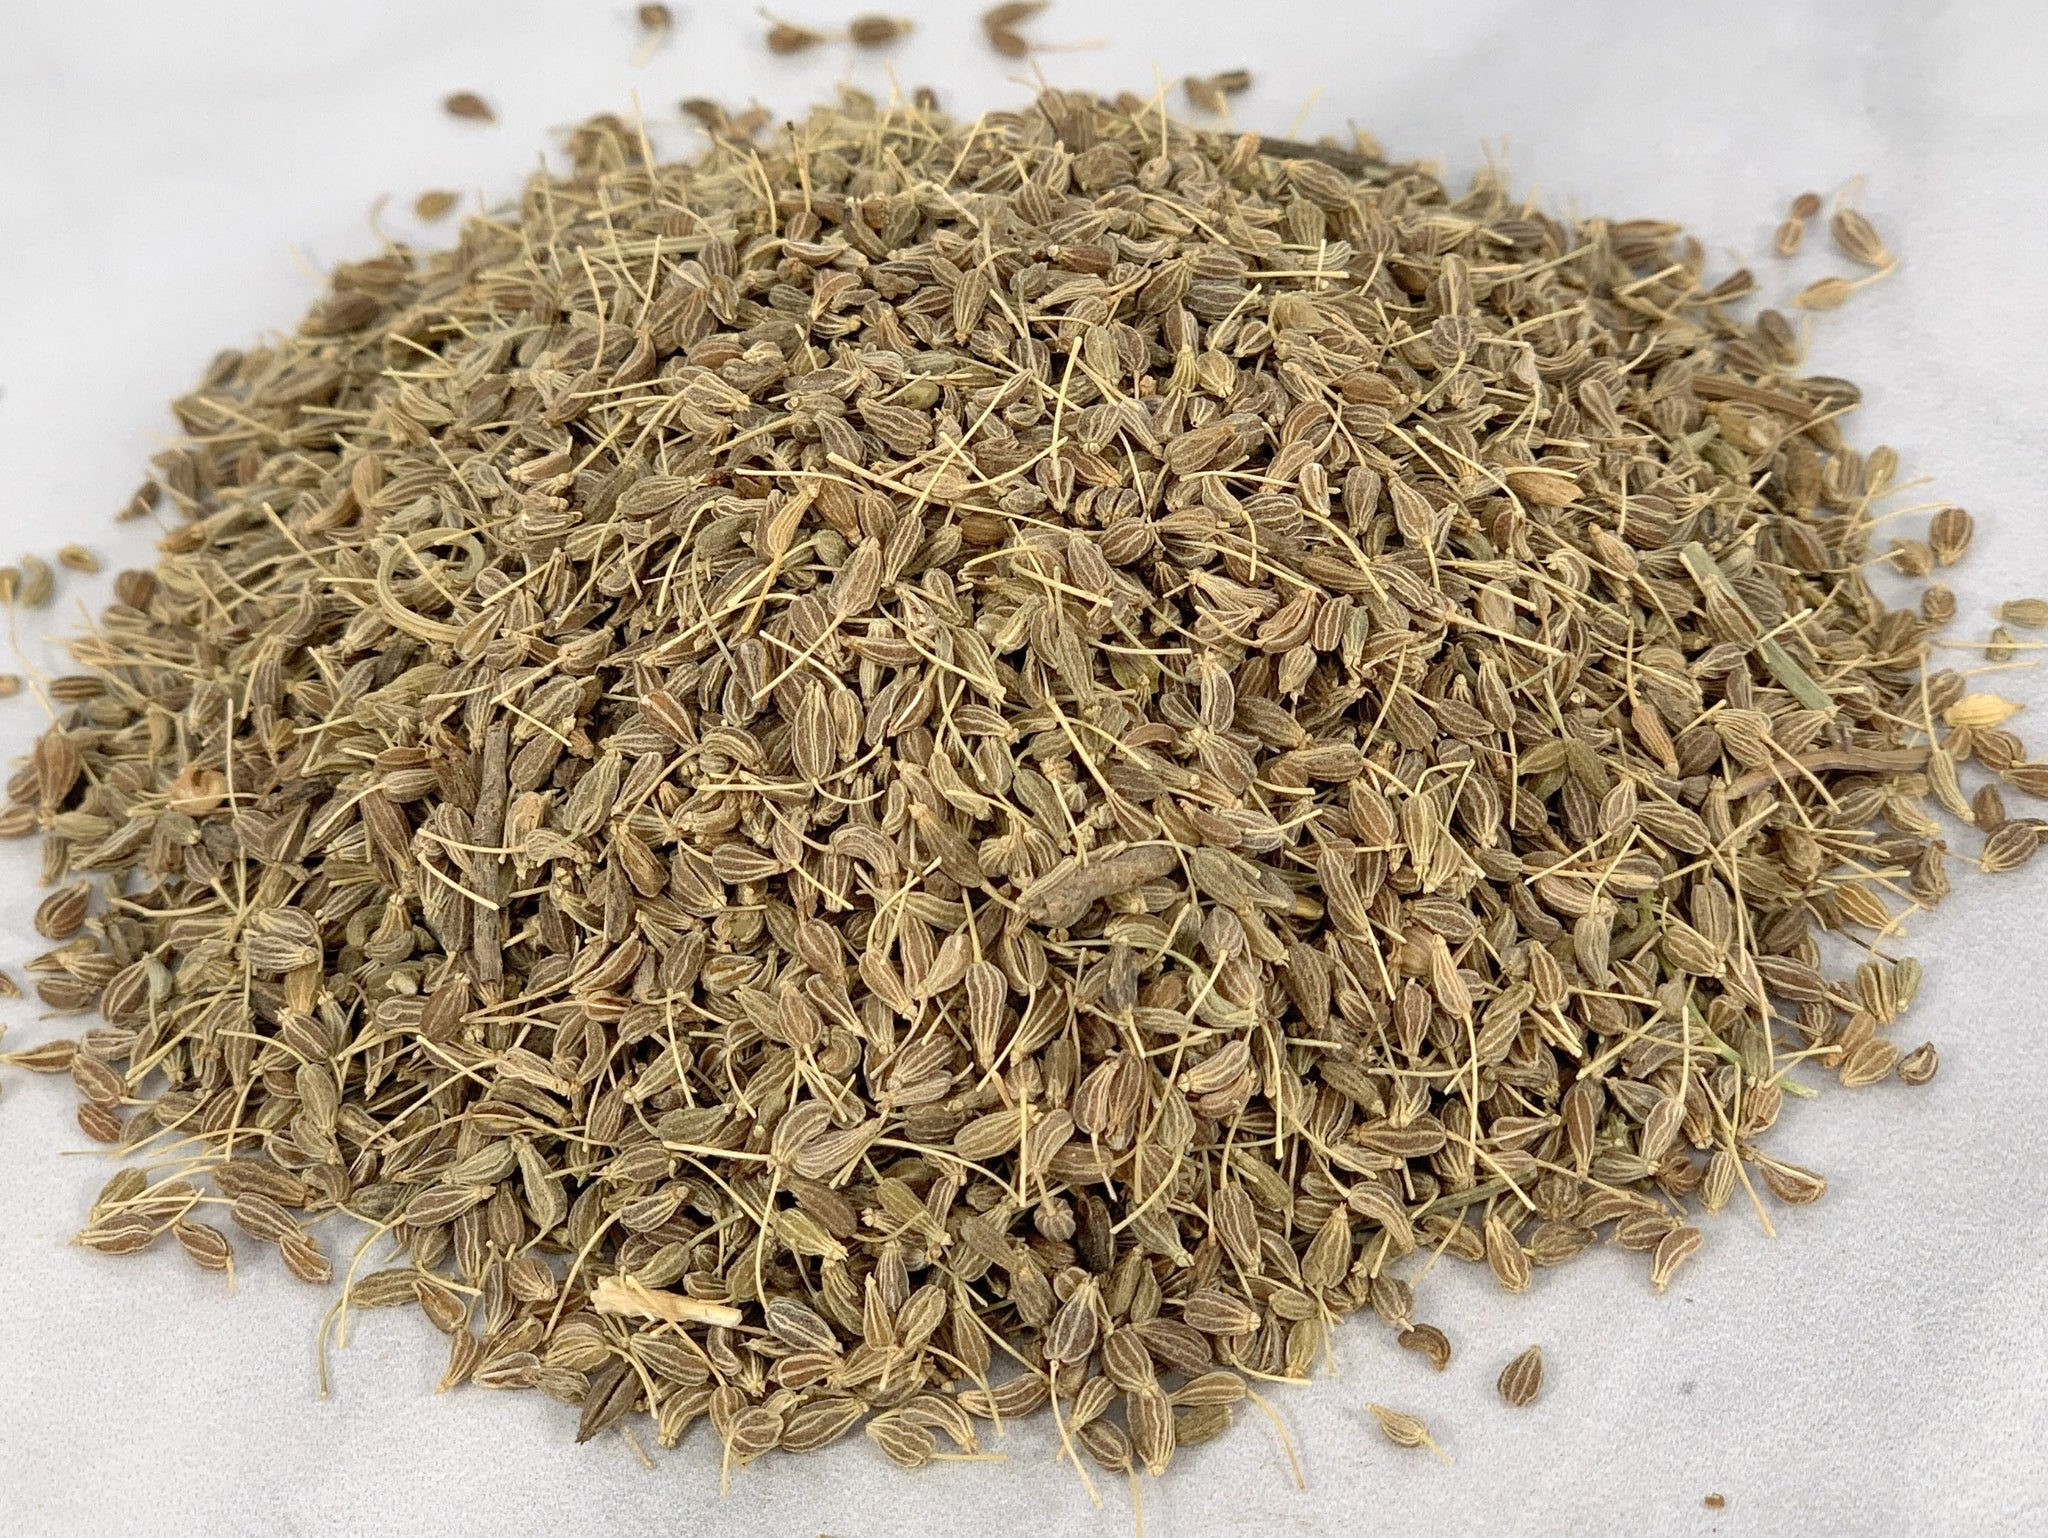 Anise Seed, Whole